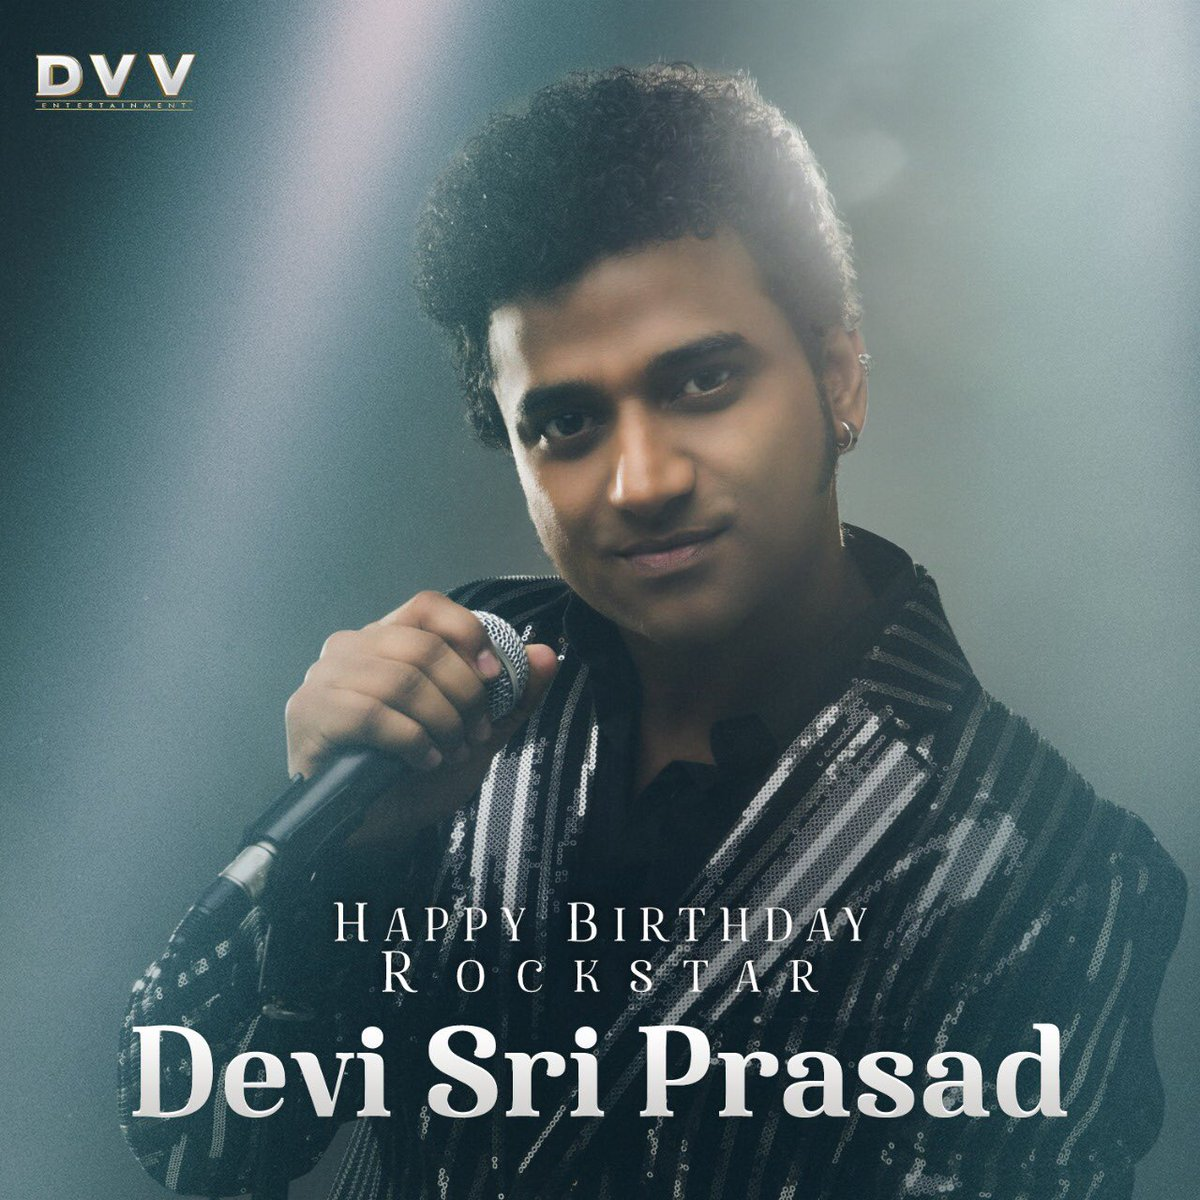 Happy Birthday Rockstar @ThisisDSP... May you keep entertaining us with your blockbuster music 🎶💖 #HappyBirthdayDSP https://t.co/DIZlWG6Zf5